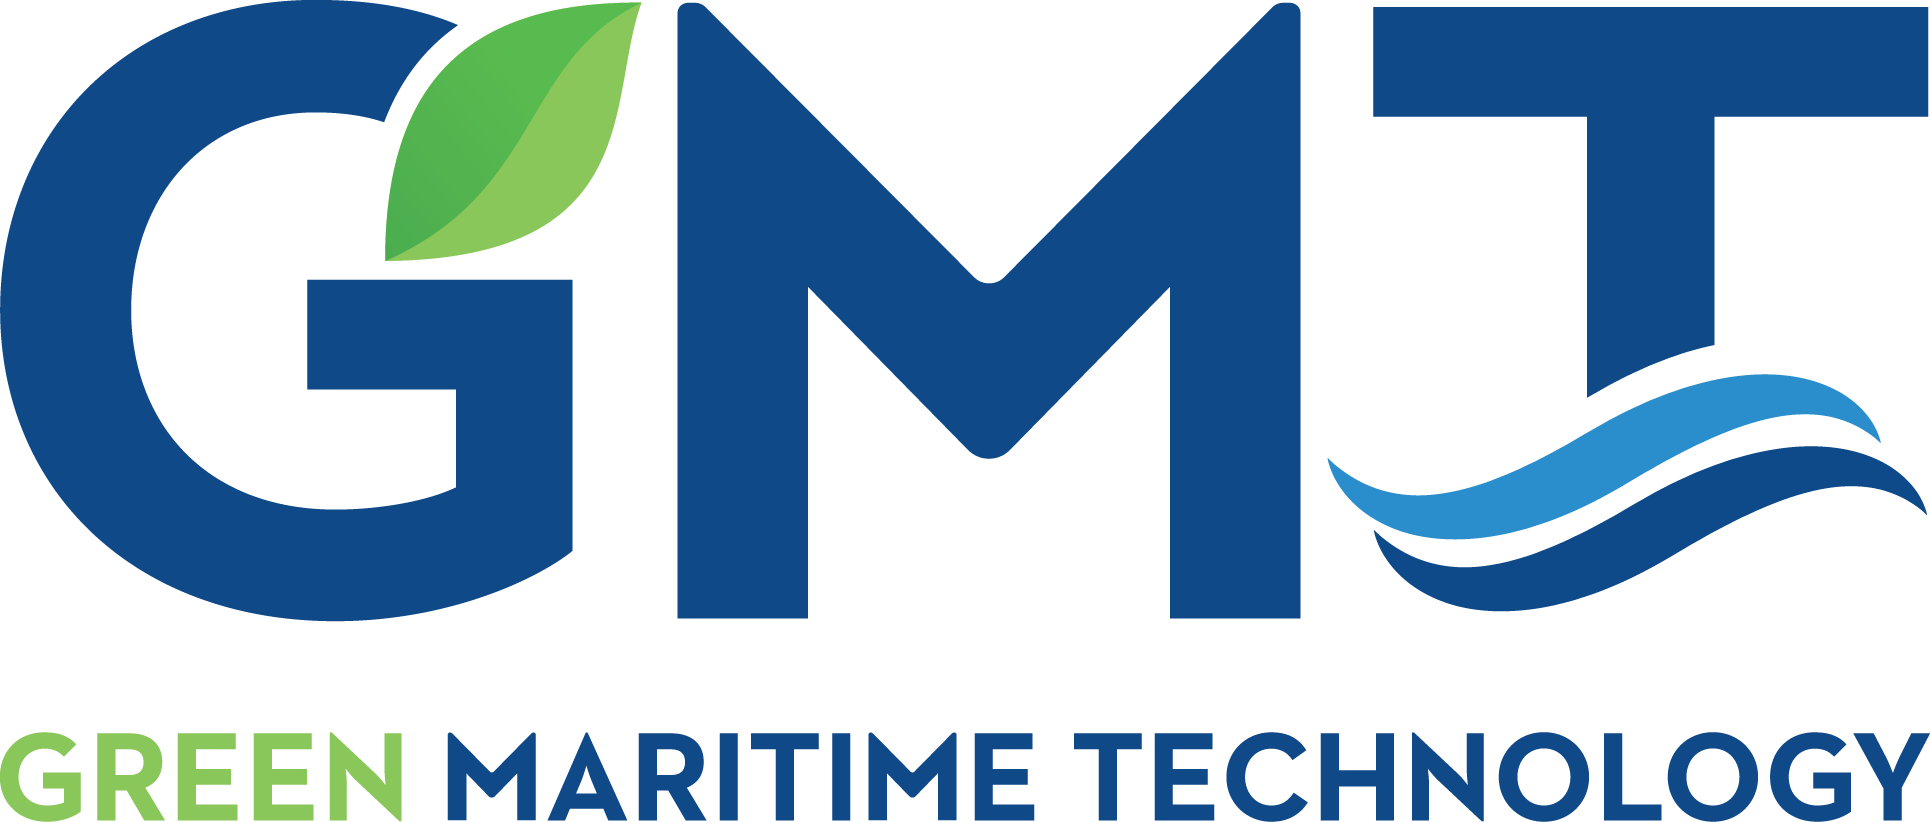 Green Maritime Technology